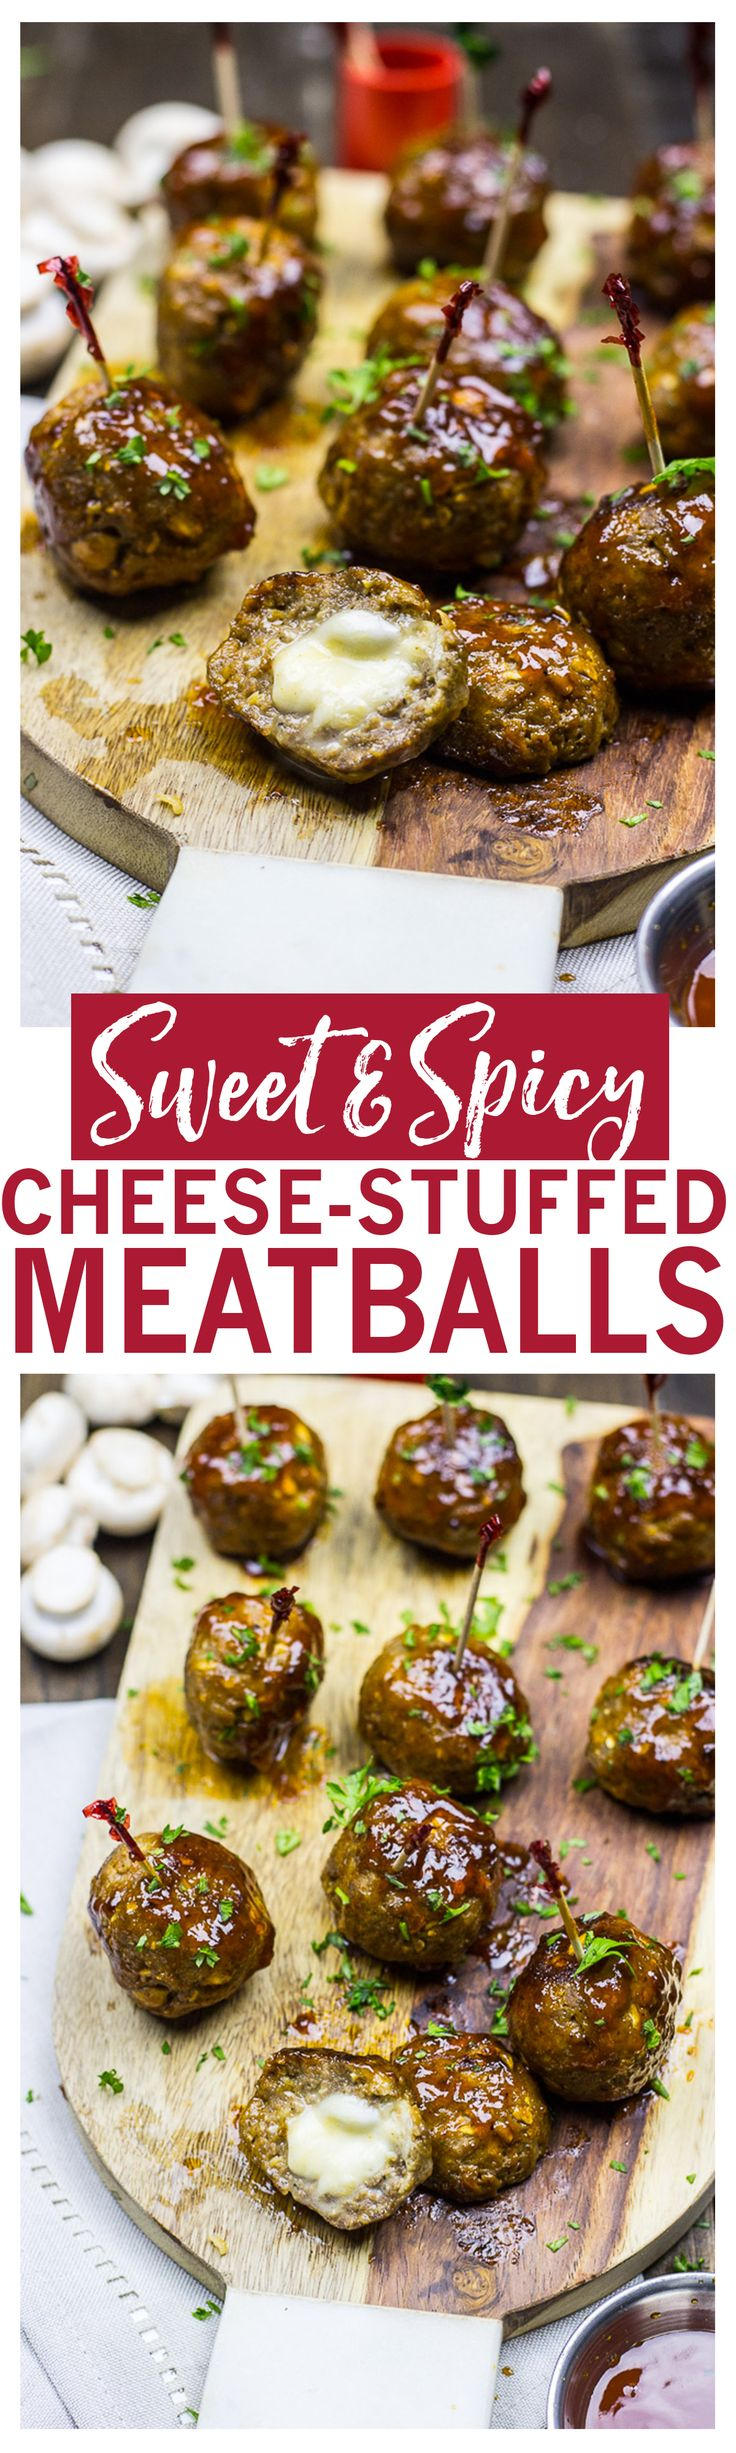 Sweet & Spicy Meatballs are the perfect appetizer   Filled with bocconcini cheese balls and tossed in a sweet BBQ sauce!